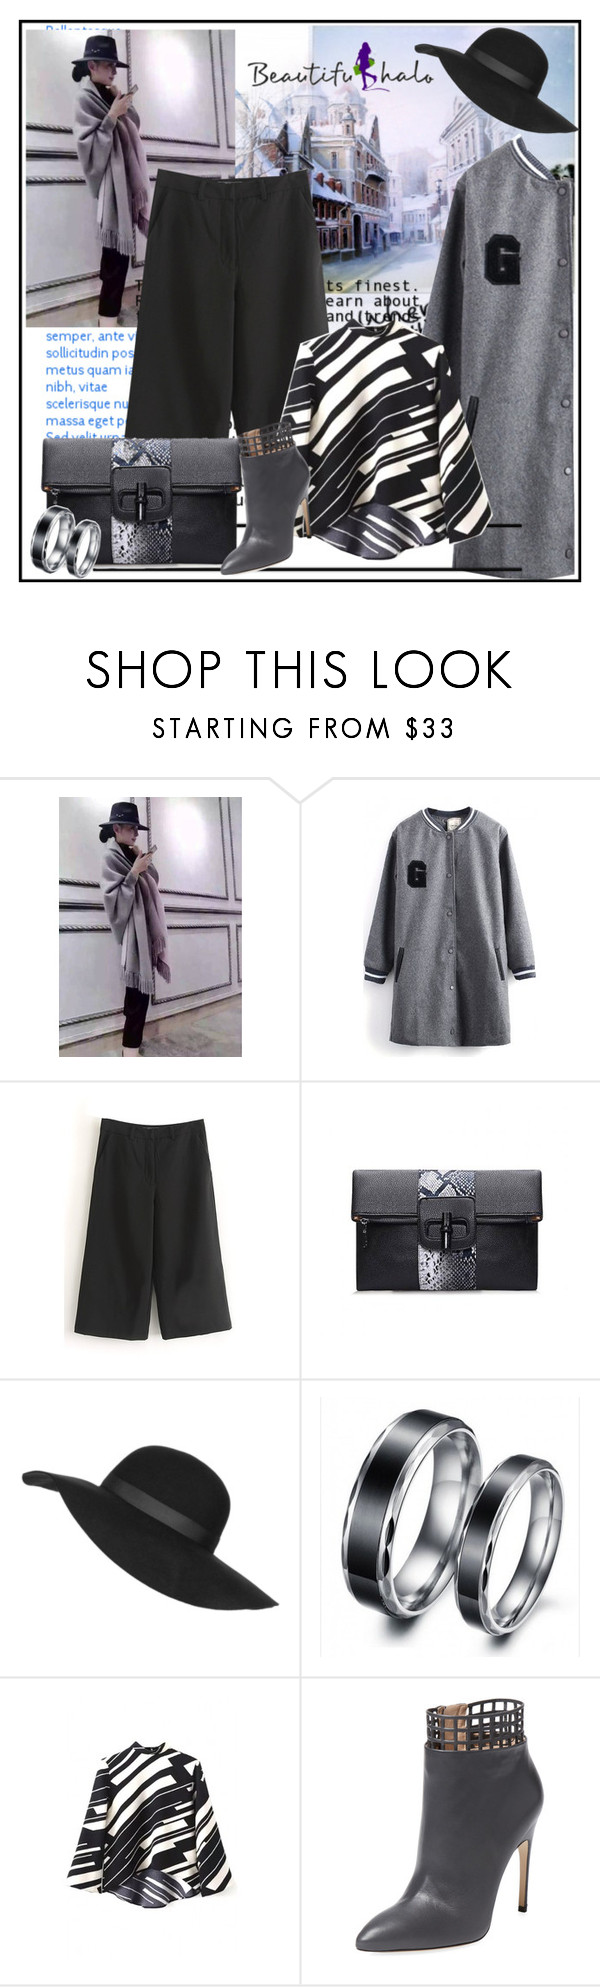 """""""Beautifulhalo.com"""" by lip-balm ❤ liked on Polyvore featuring lilygirl, WithChic, Topshop, Sergio Rossi and beautifulhalo"""